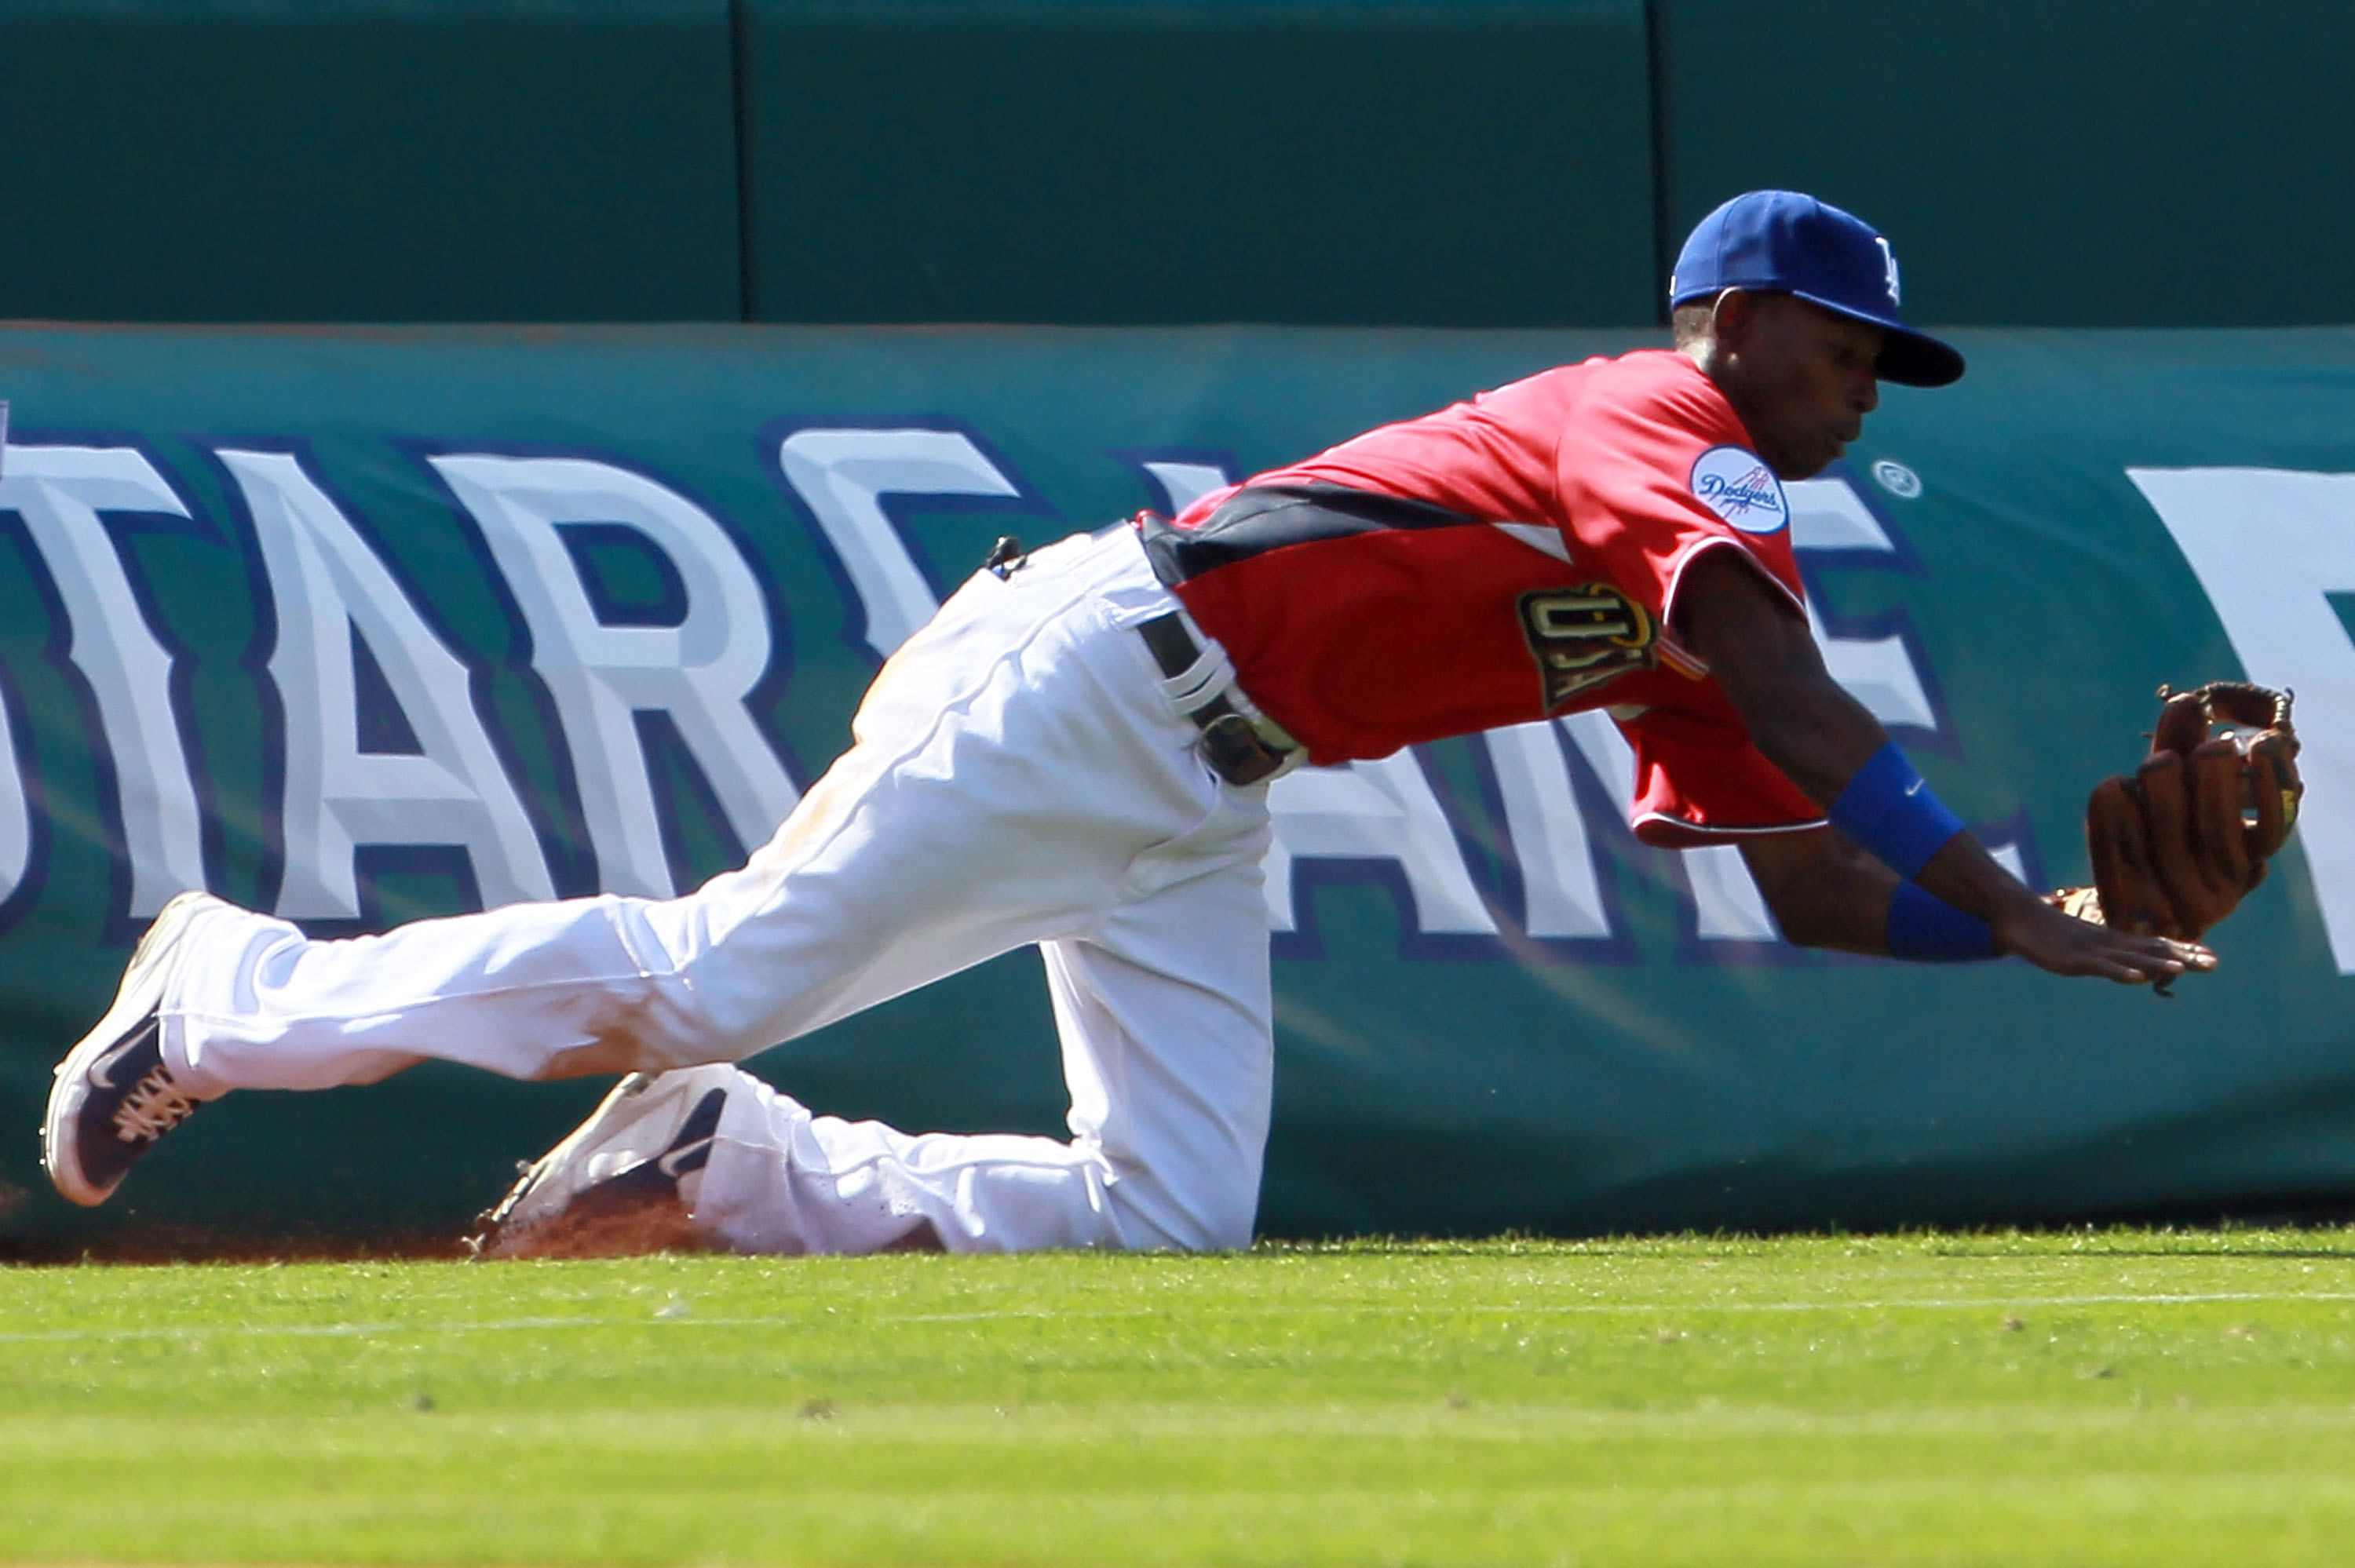 ANAHEIM, CA - JULY 11:  U.S. Futures All-Star Dee Gordon #5 of the Los Angeles Dodgers dives for the ball during the 2010 XM All-Star Futures Game at Angel Stadium of Anaheim on July 11, 2010 in Anaheim, California.  (Photo by Jeff Gross/Getty Images)